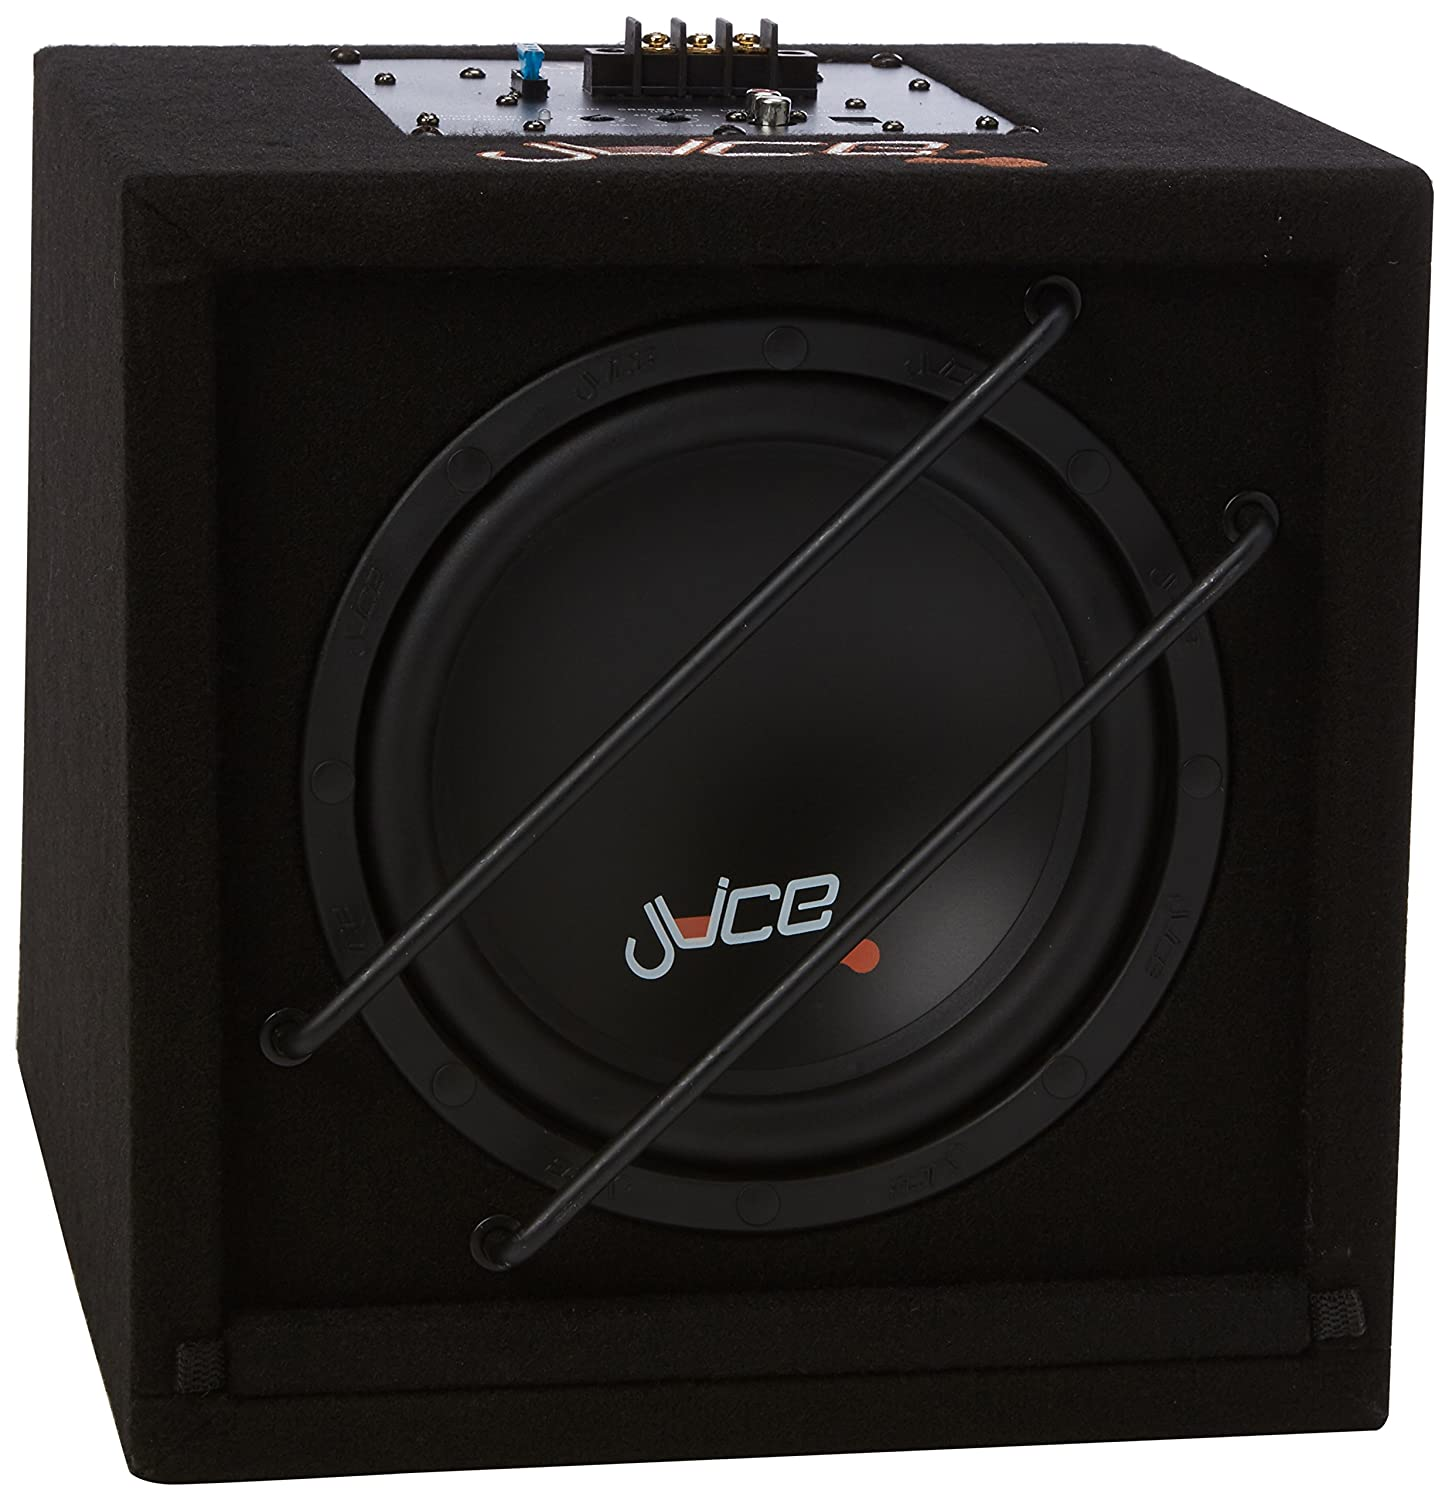 Juice AS8 Compact Active Subwoofer Enclosure with Built In Amplifier and 8-Inch Subwoofer In Phase